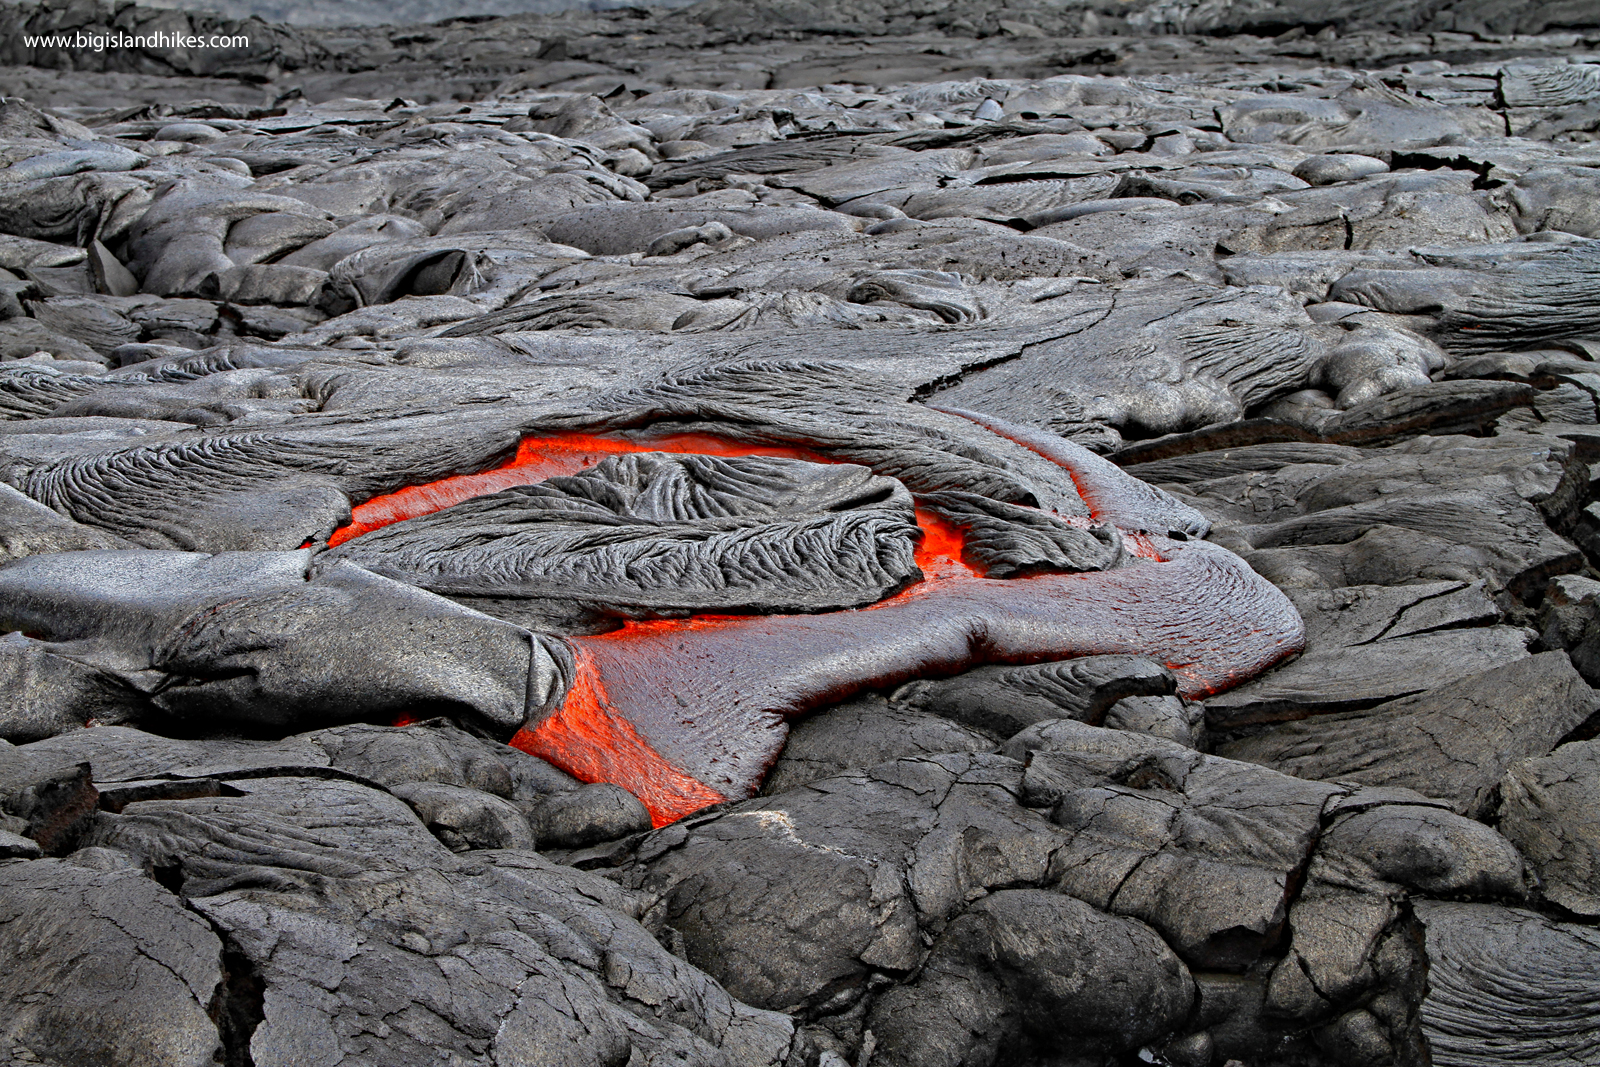 hawaii big island lava photo 5.jpg